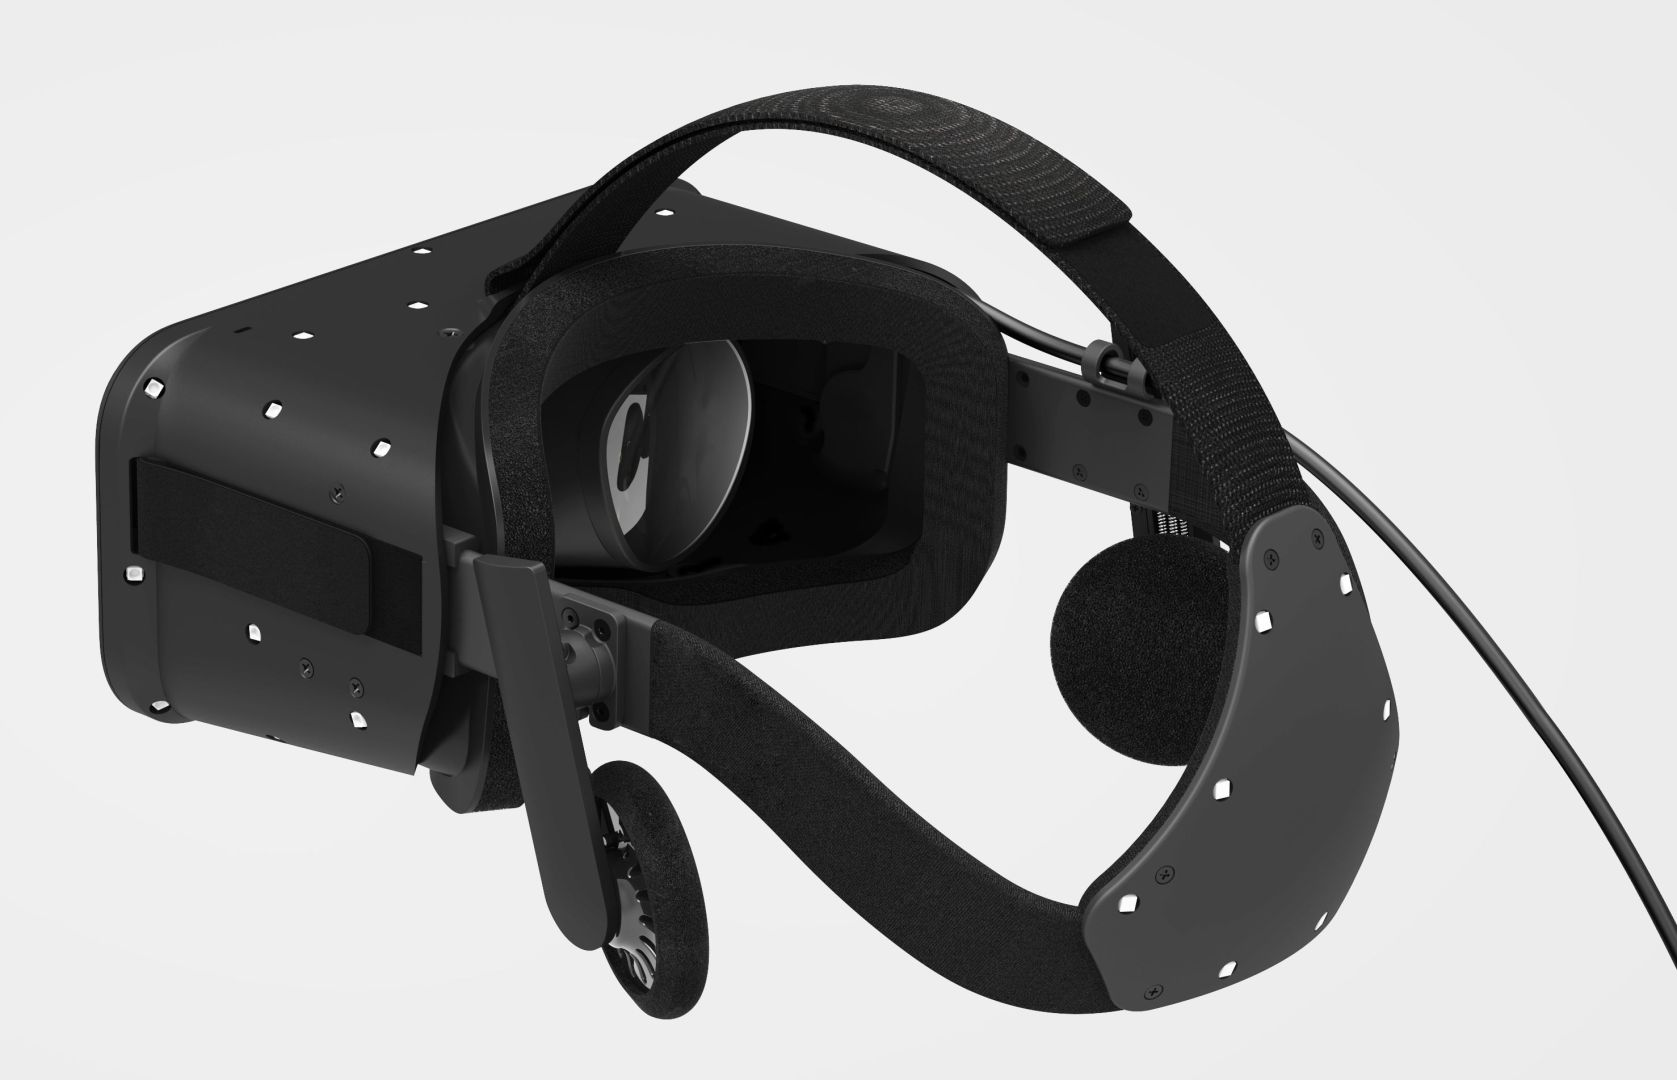 Oculus 'Crescent Bay' prototype was the final preparation run for the mass produced version of Rift.